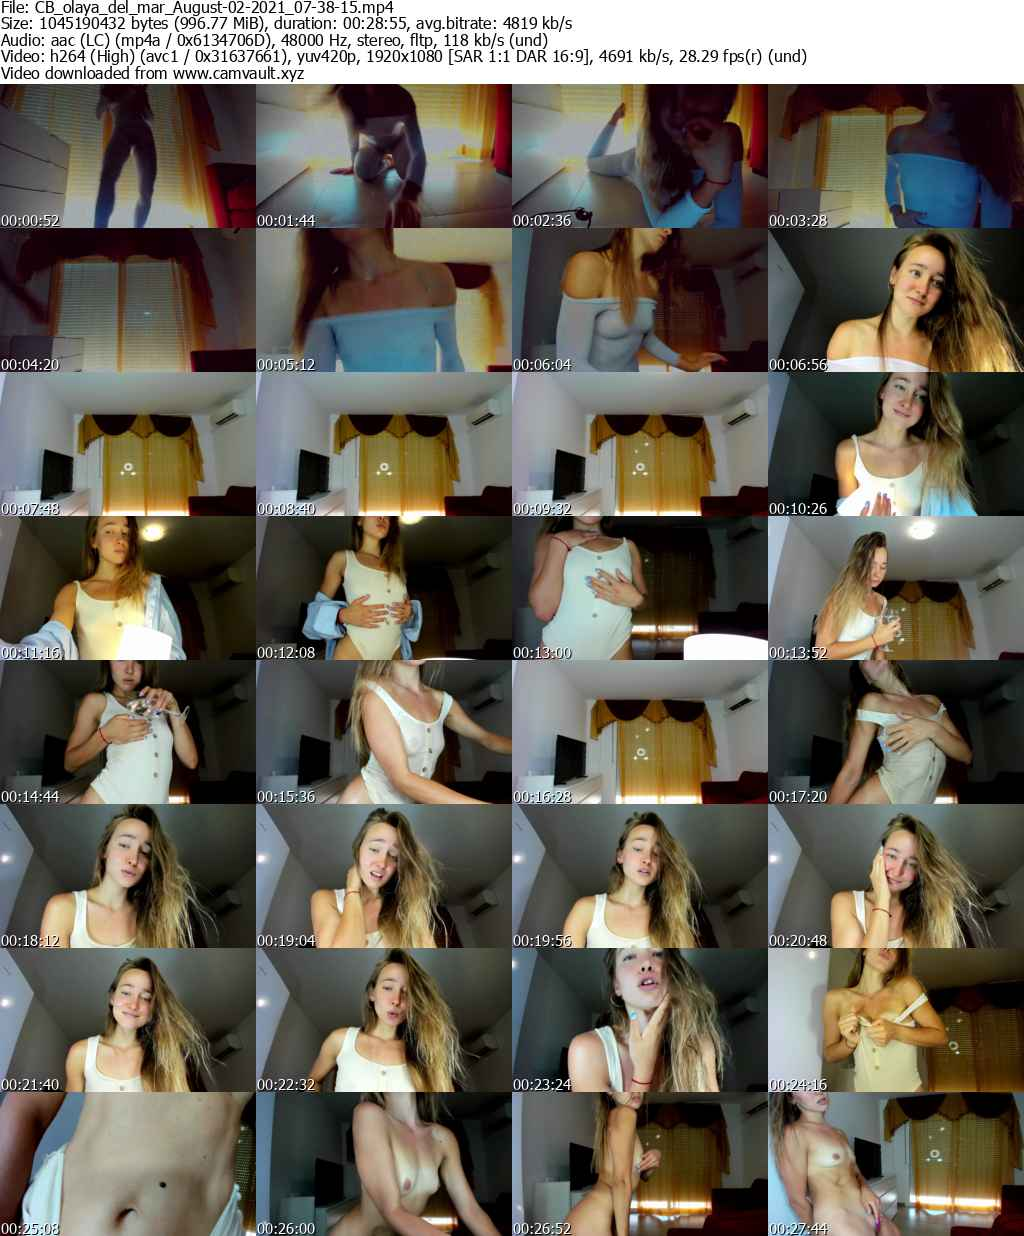 Video preview for model olaya_del_mar